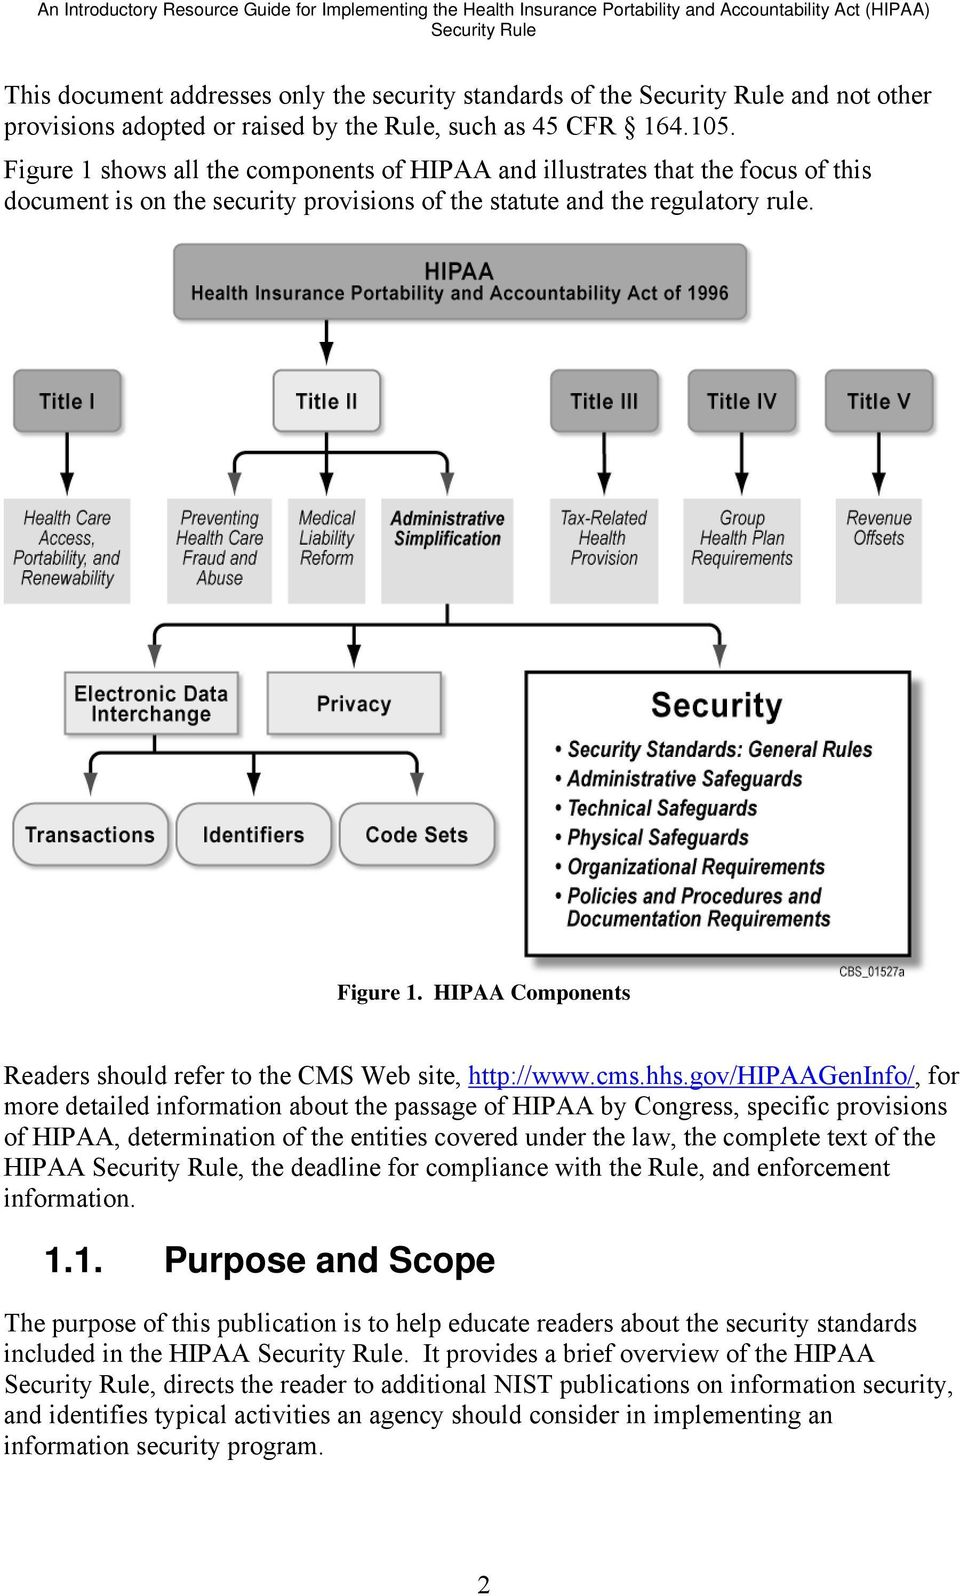 Figure 1 shows all the components of HIPAA and illustrates that the focus of this document is on the security provisions of the statute and the regulatory rule. Figure 1.